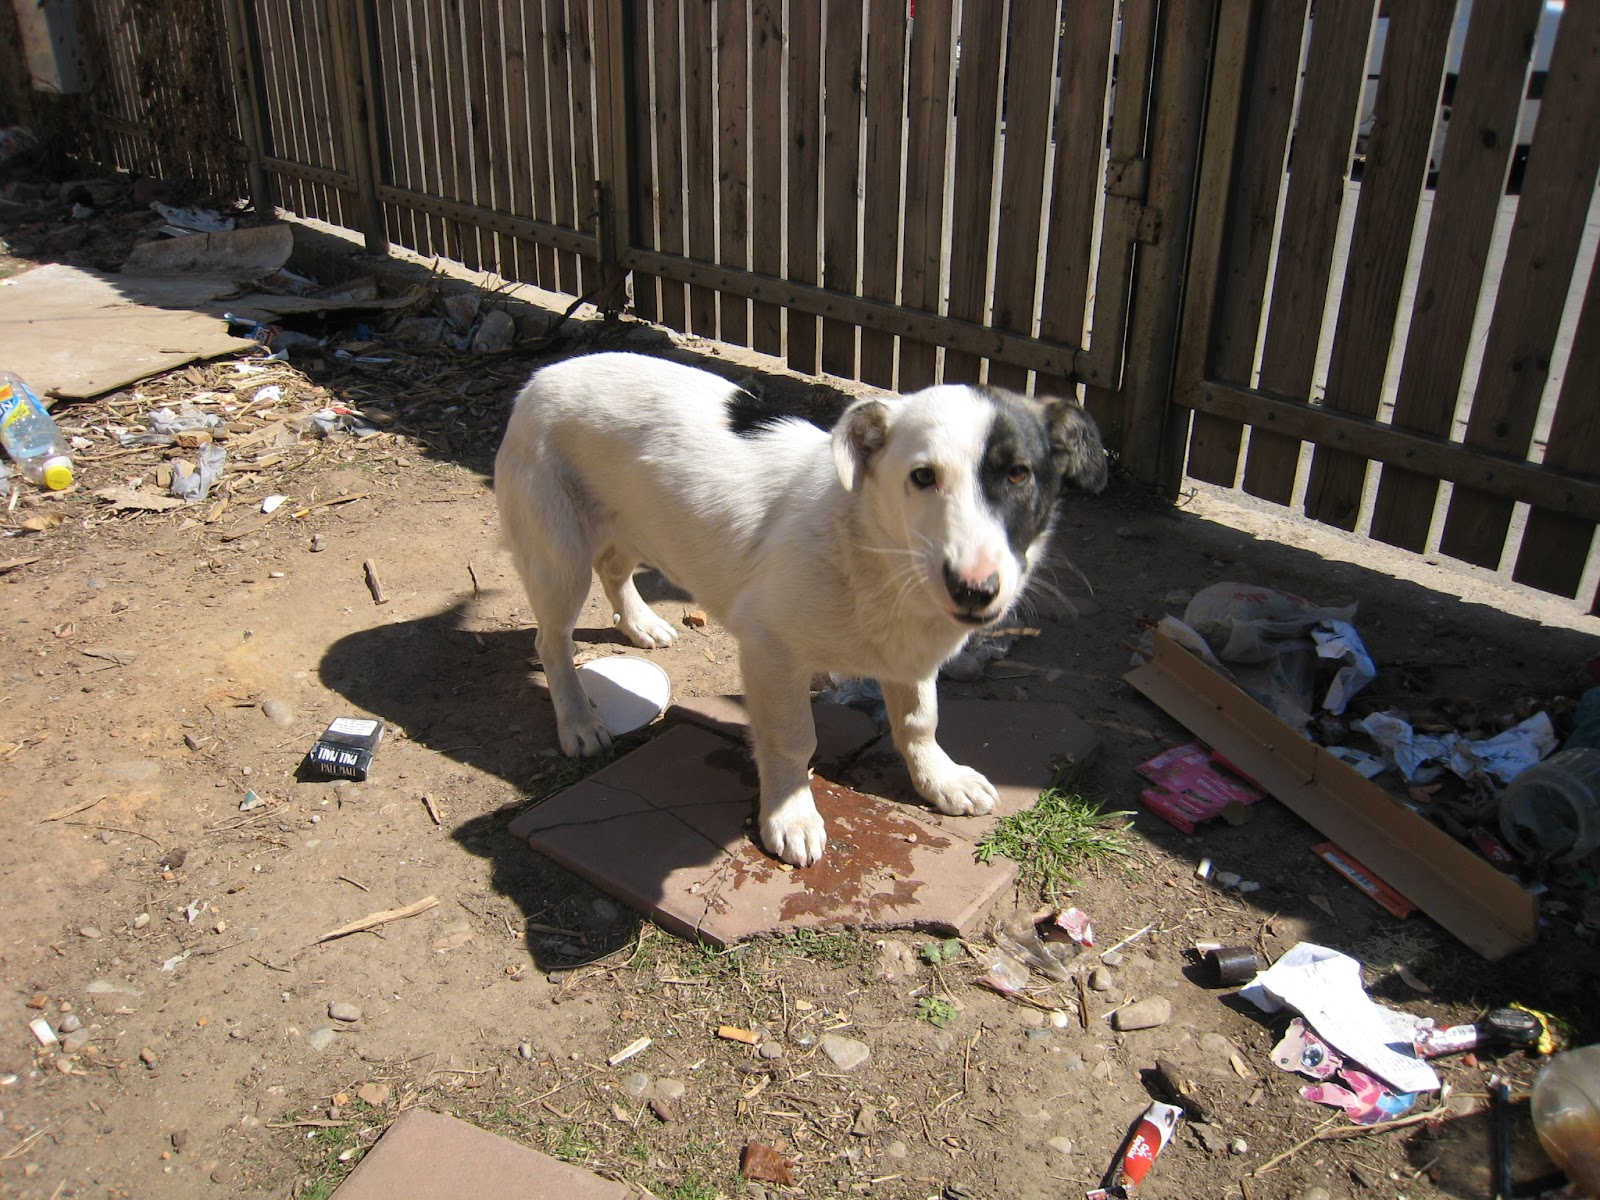 Romanian Stray Dogs Ploiesti - RSDP: One sad little doggie ...